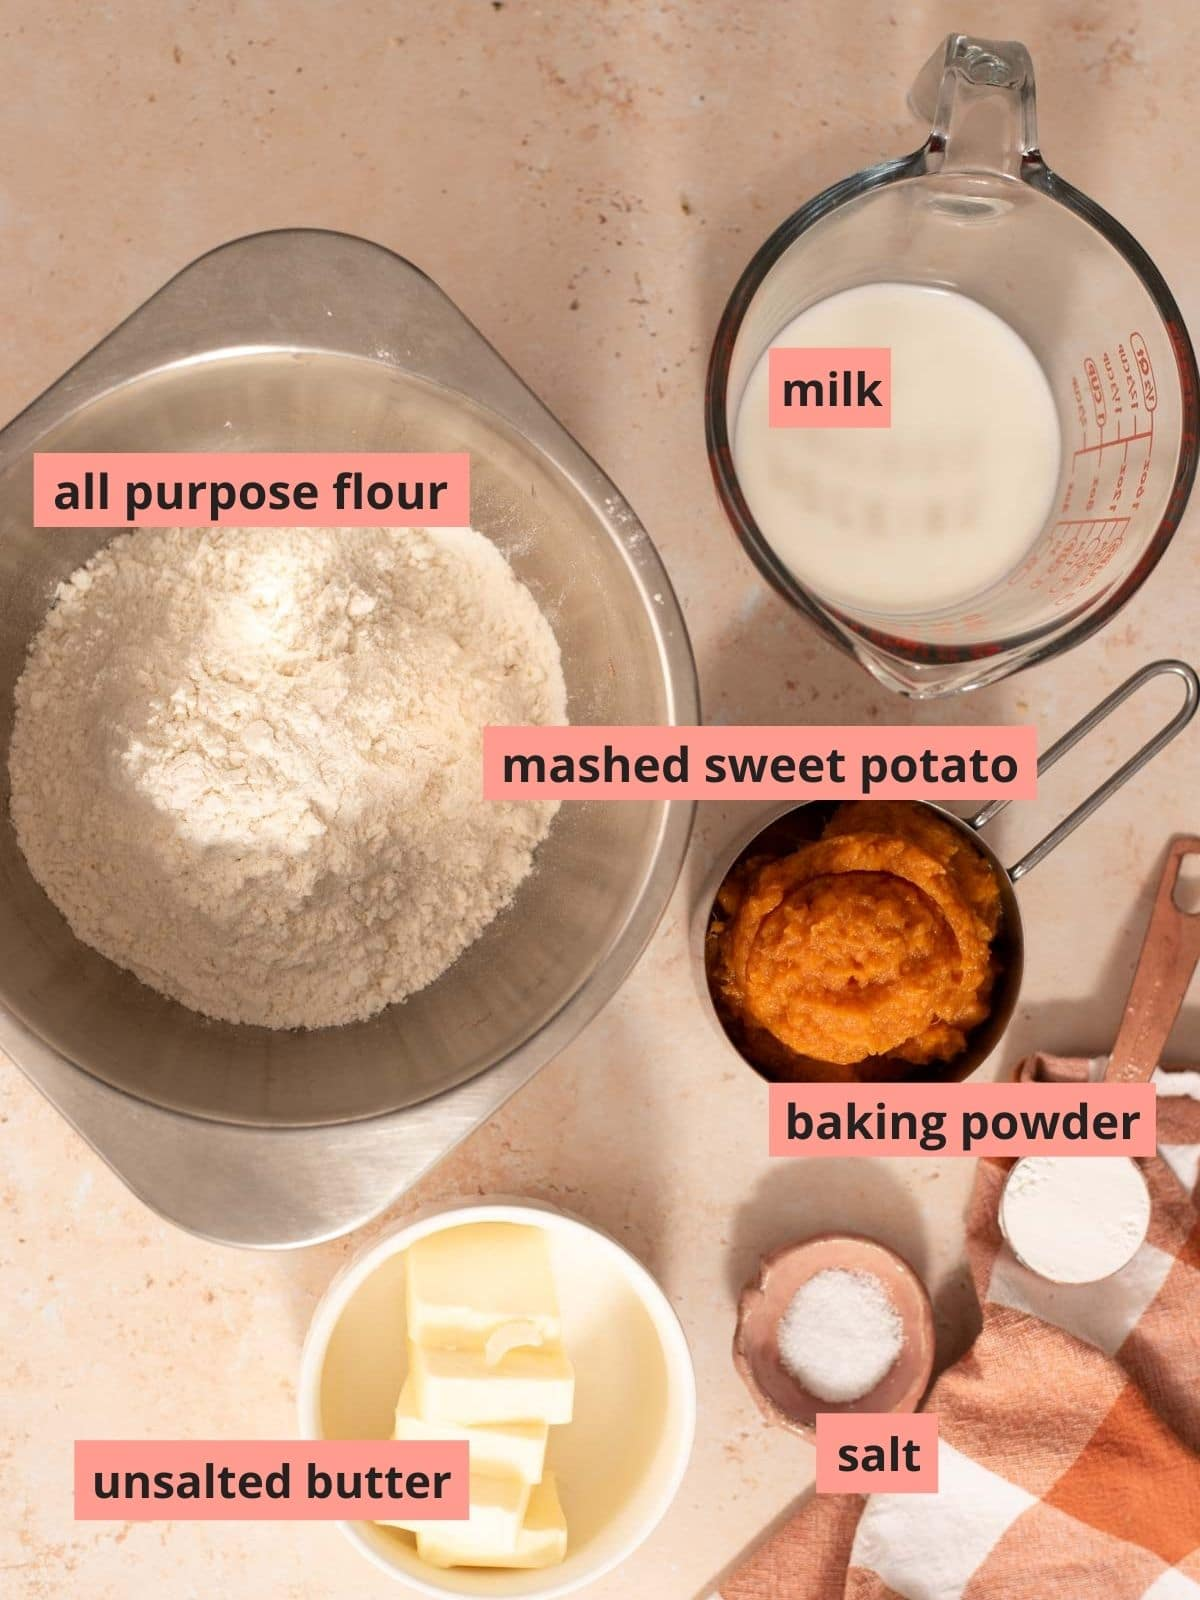 Labeled ingredients used to make sweet potato biscuits